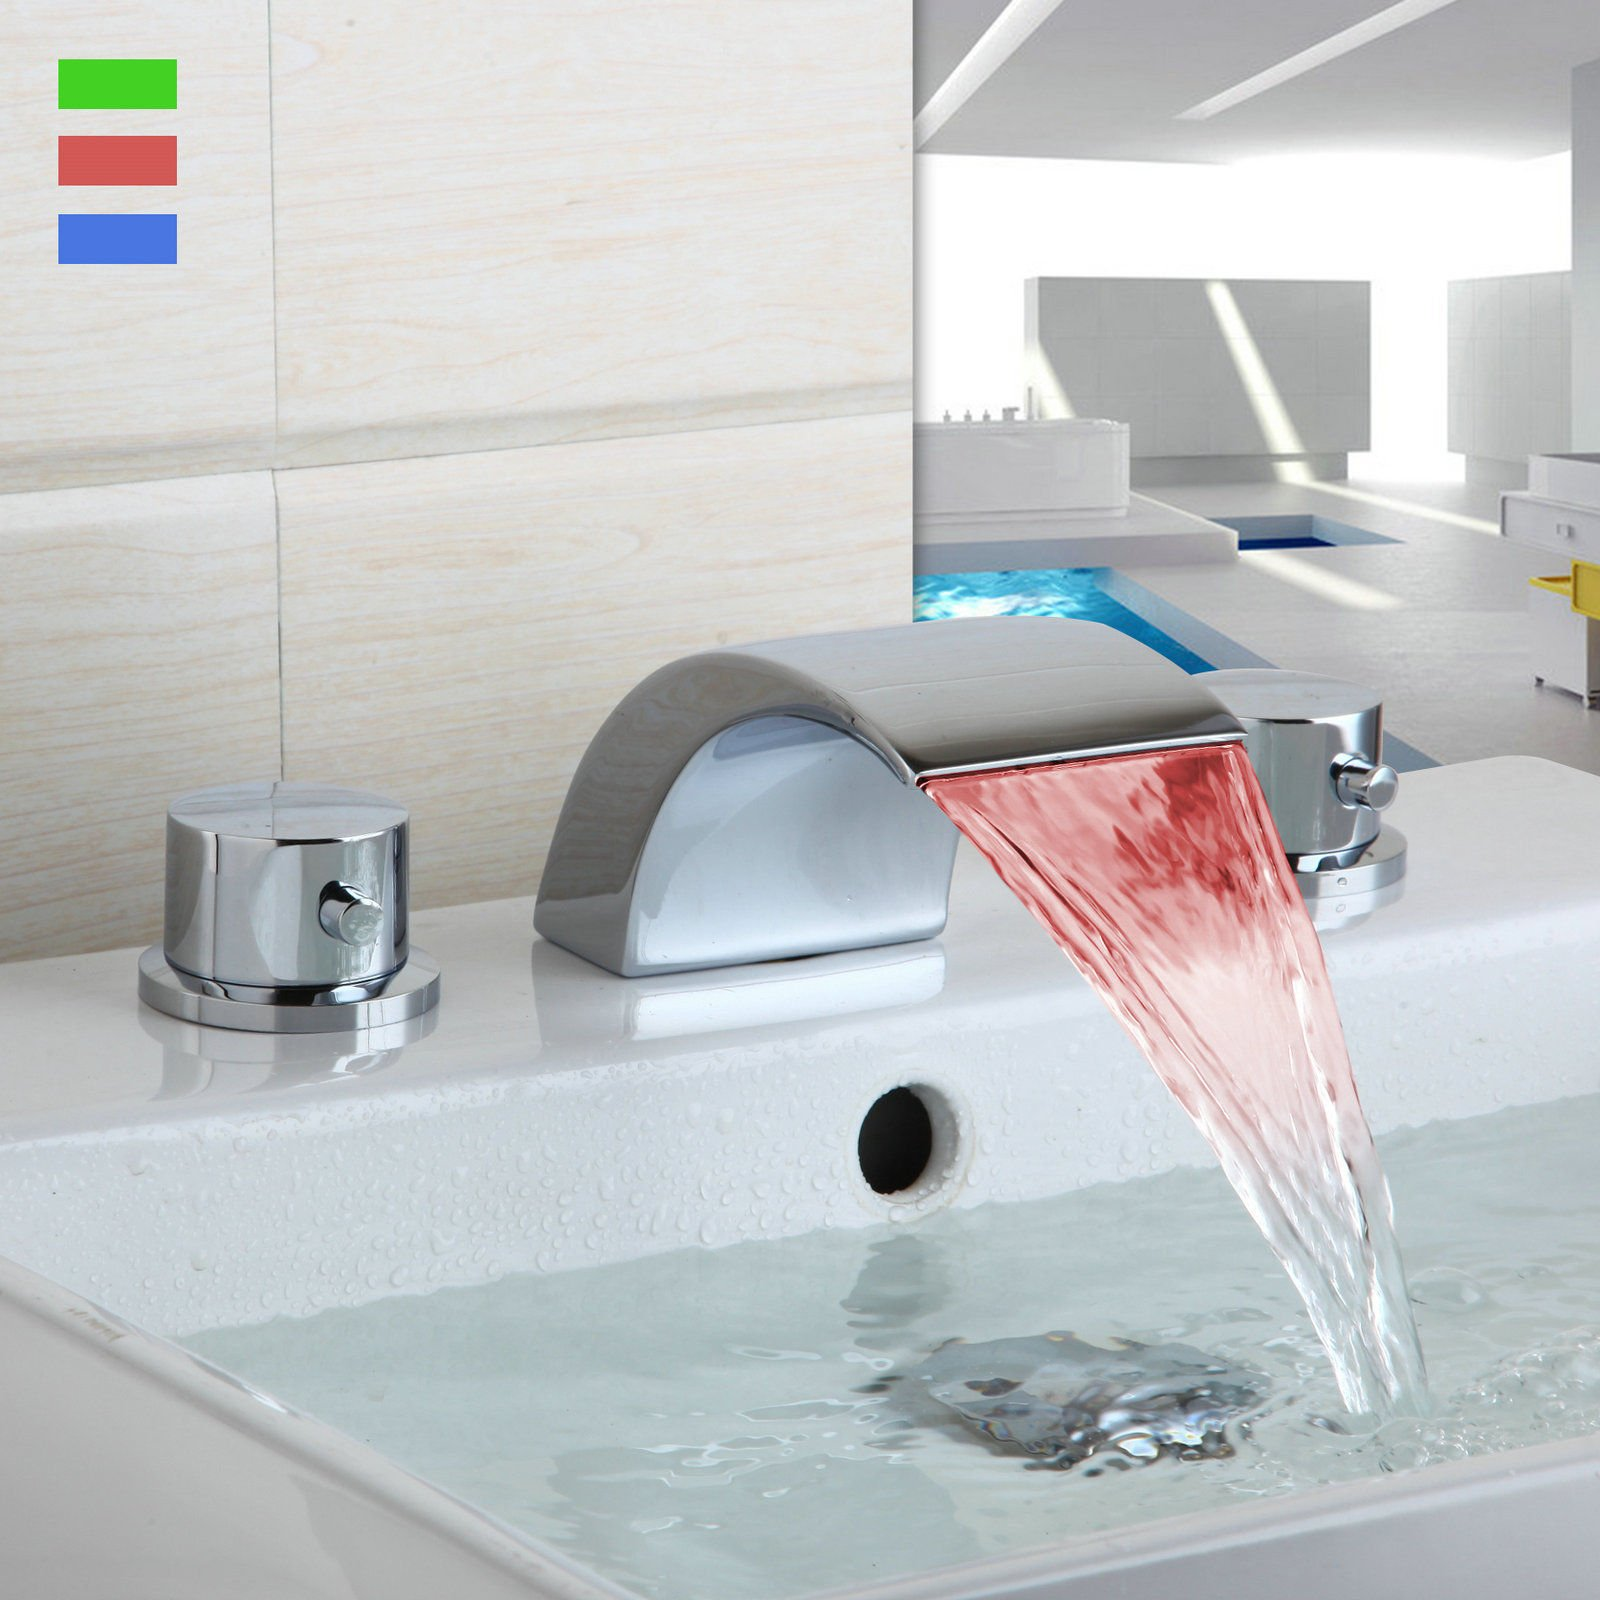 Miefocit Modern Bathroom LED Waterfall Faucet Bathtub Widespread Basin Sink Mixer Tap Double Handles Faucet Set